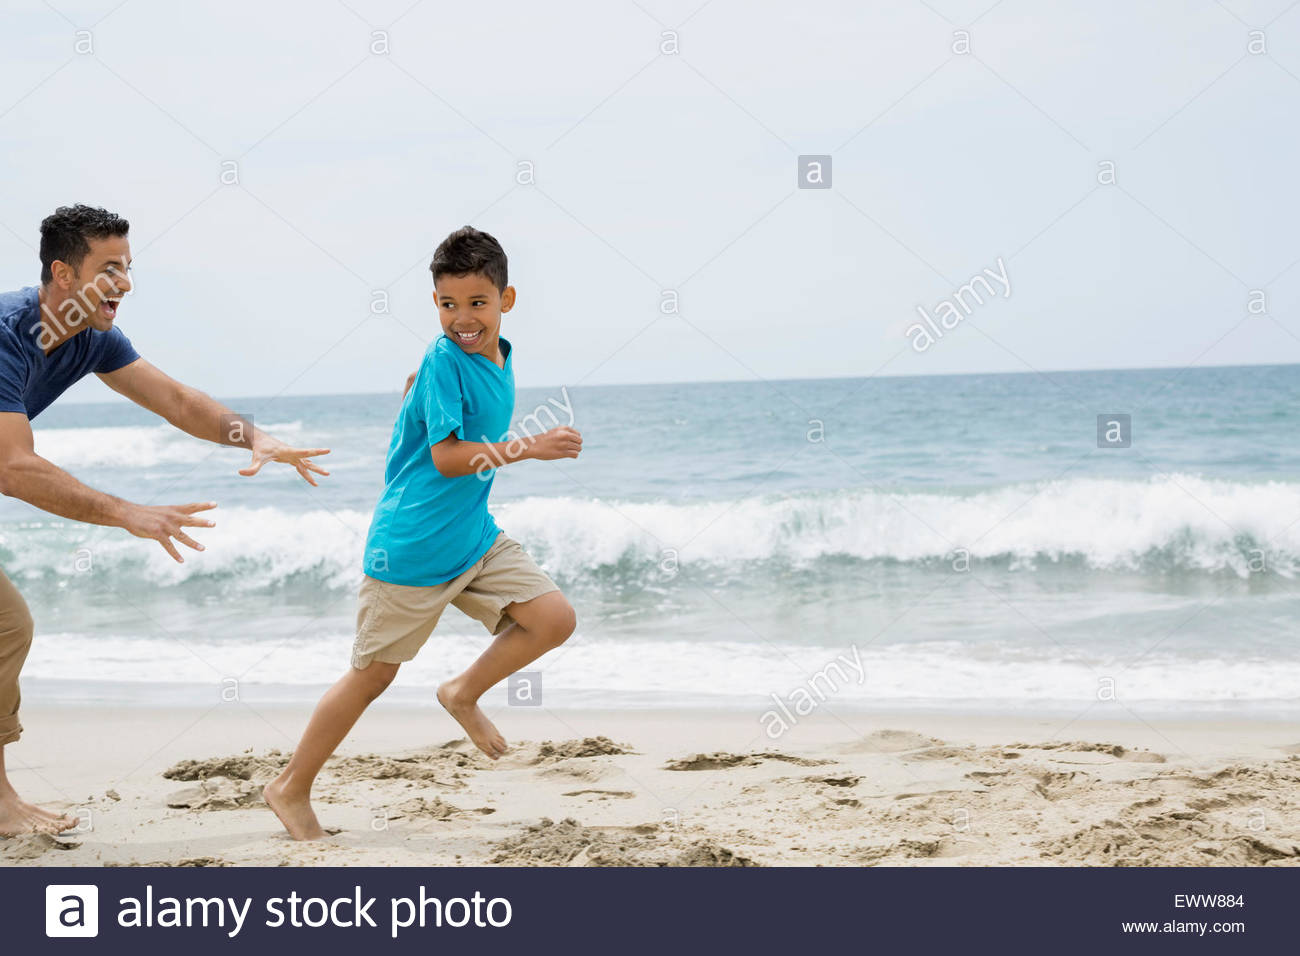 Father running and chasing son on beach - Stock Image